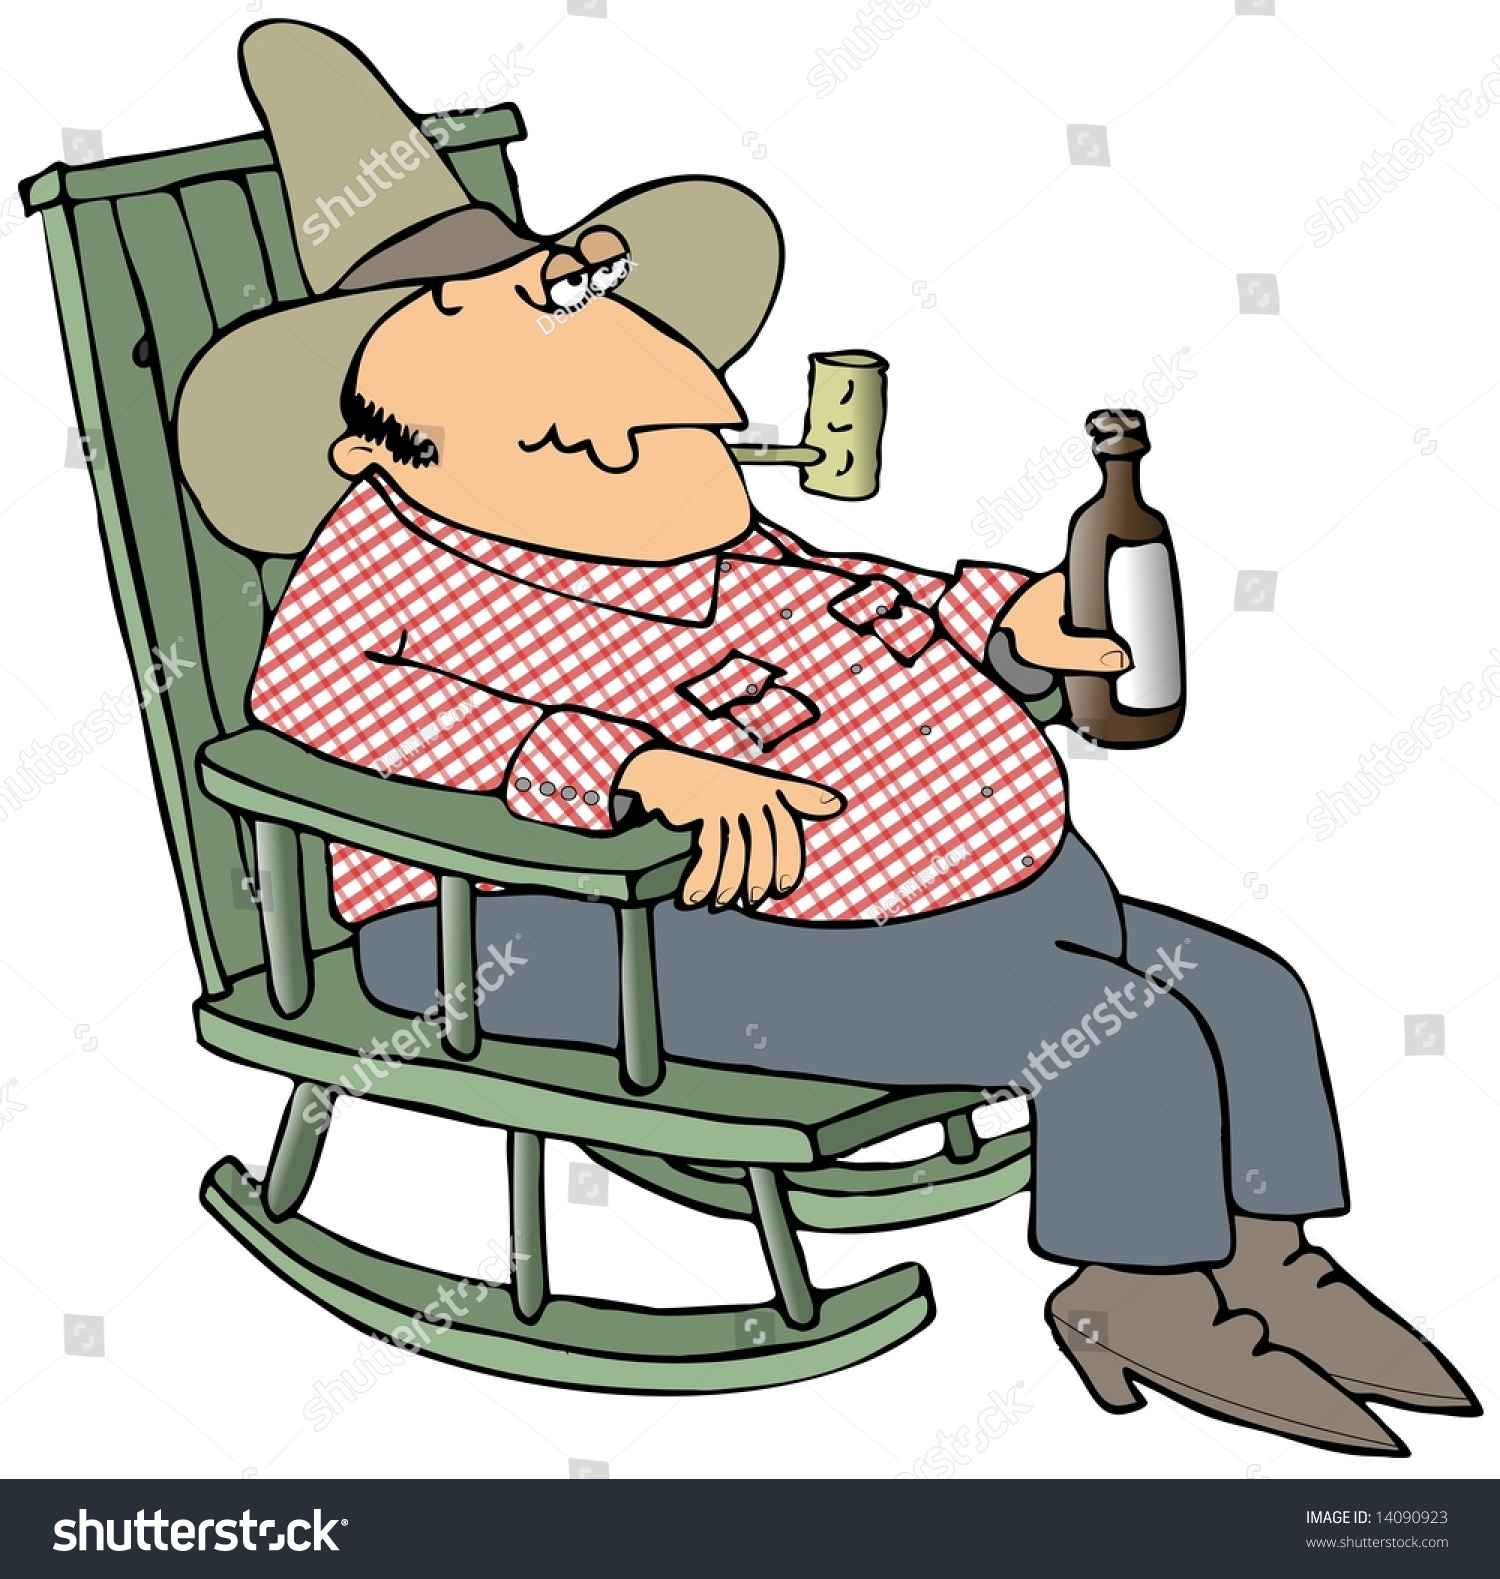 Hillbilly In A Chair Stock Photo 14090923 : Shutterstock